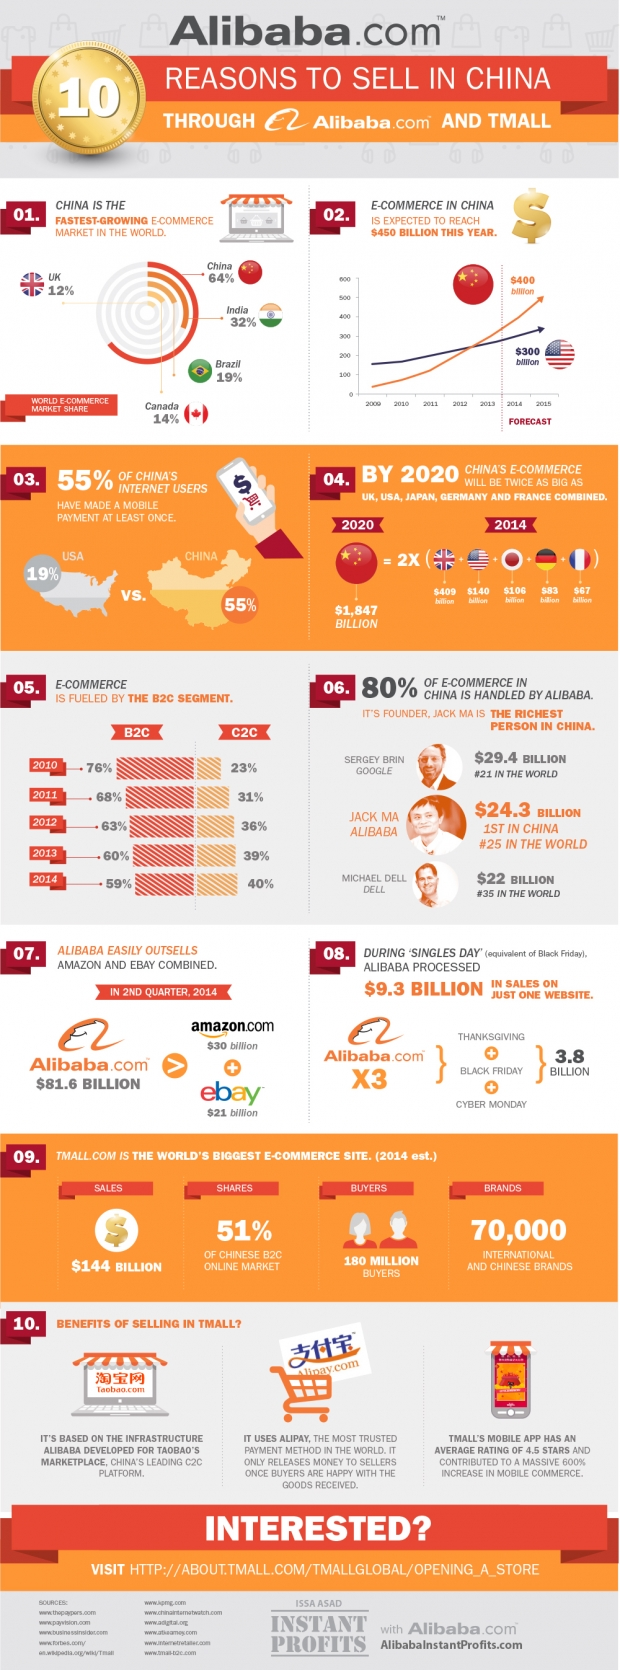 10-reasons-to-sell-in-china-alibaba-tmall-issa-asad